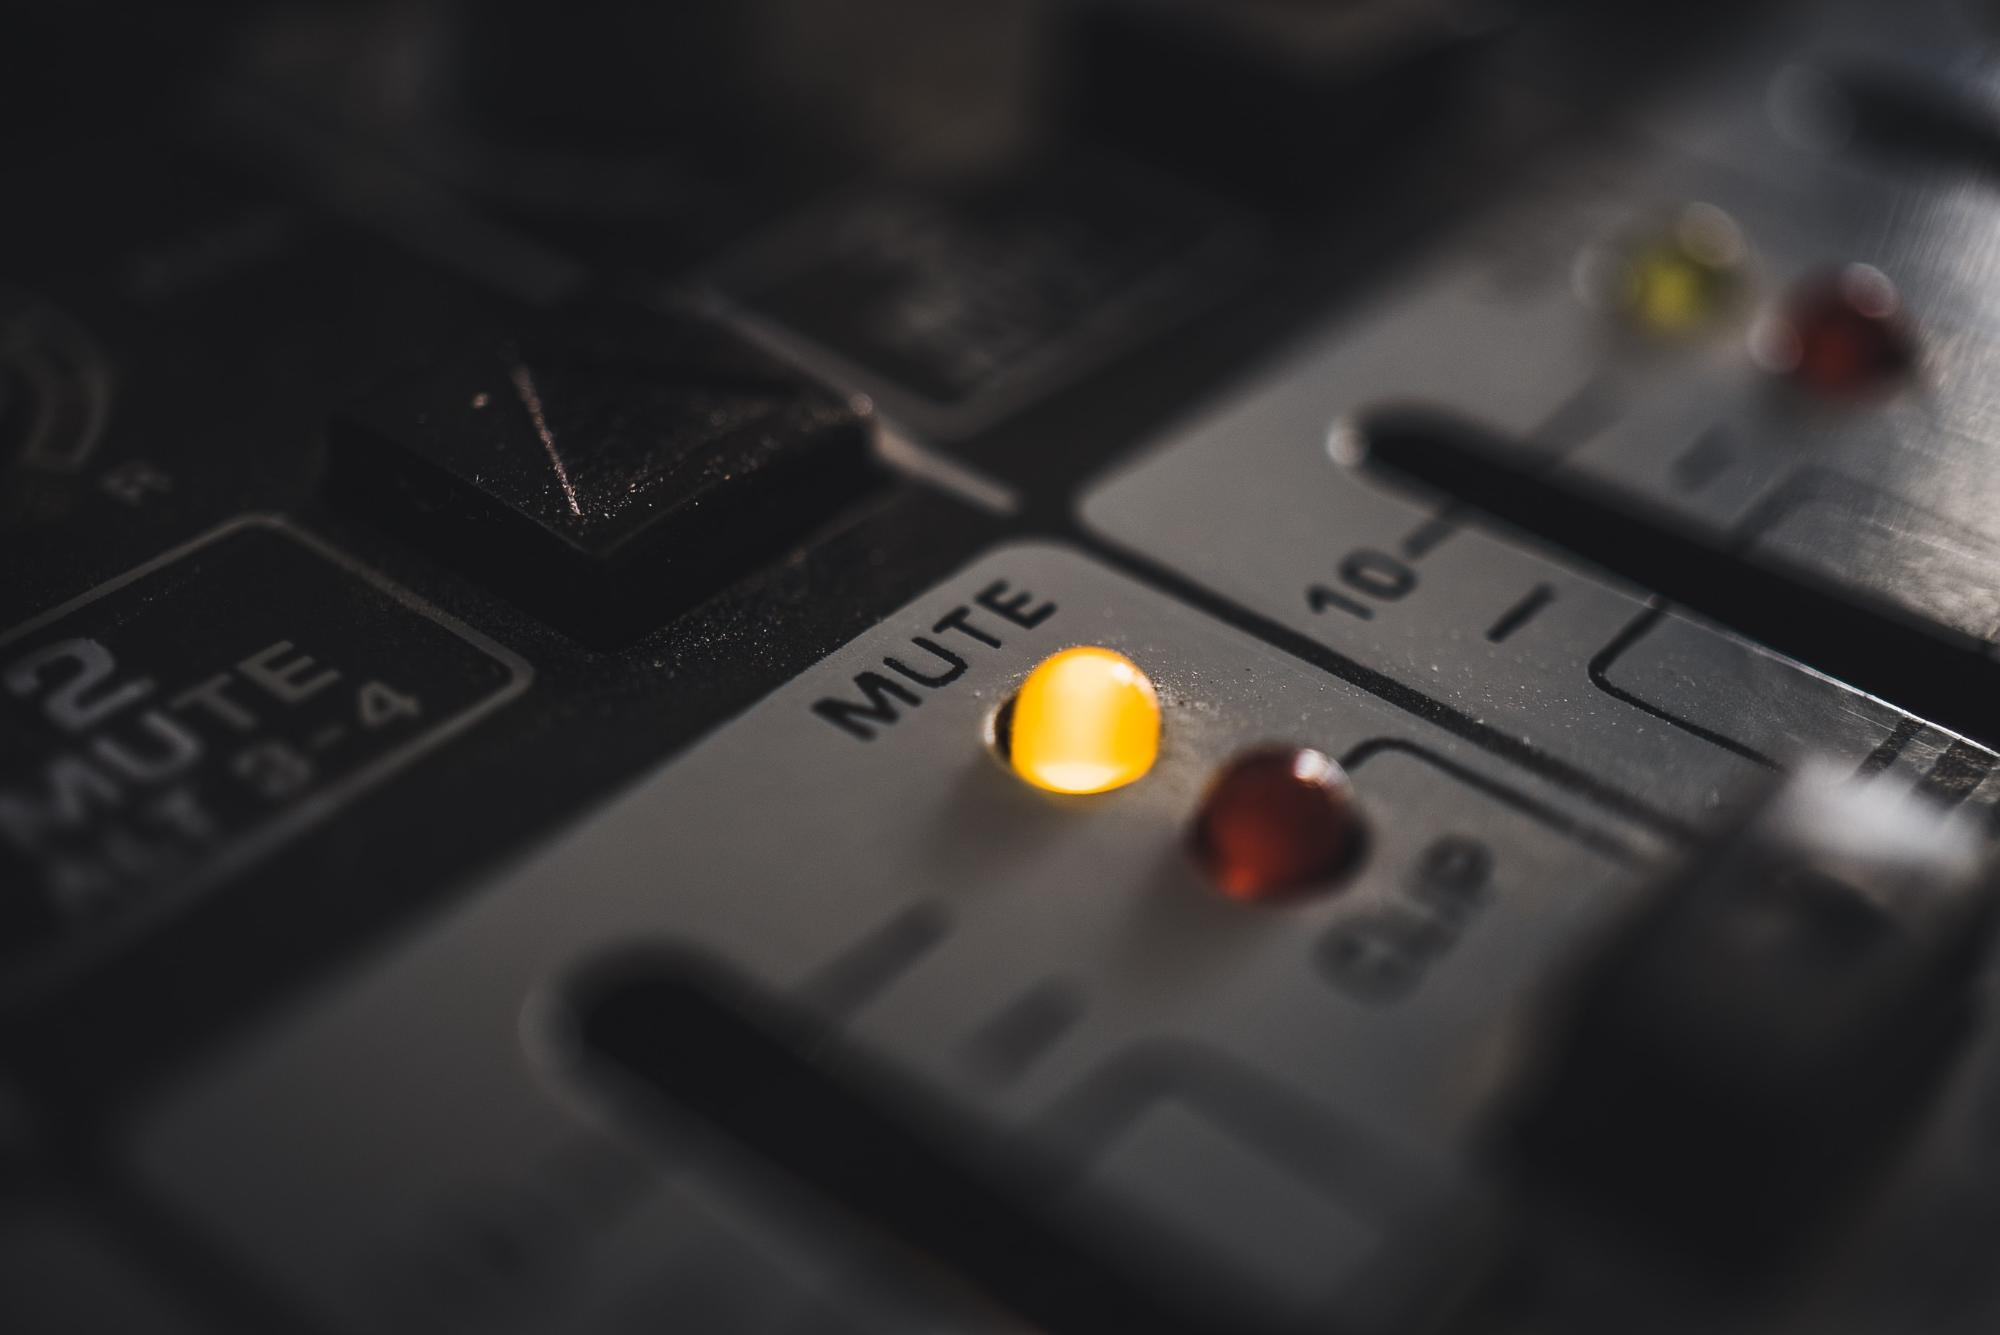 A mute LED on a modern, digital audio mixer.  by Mika Baumeister